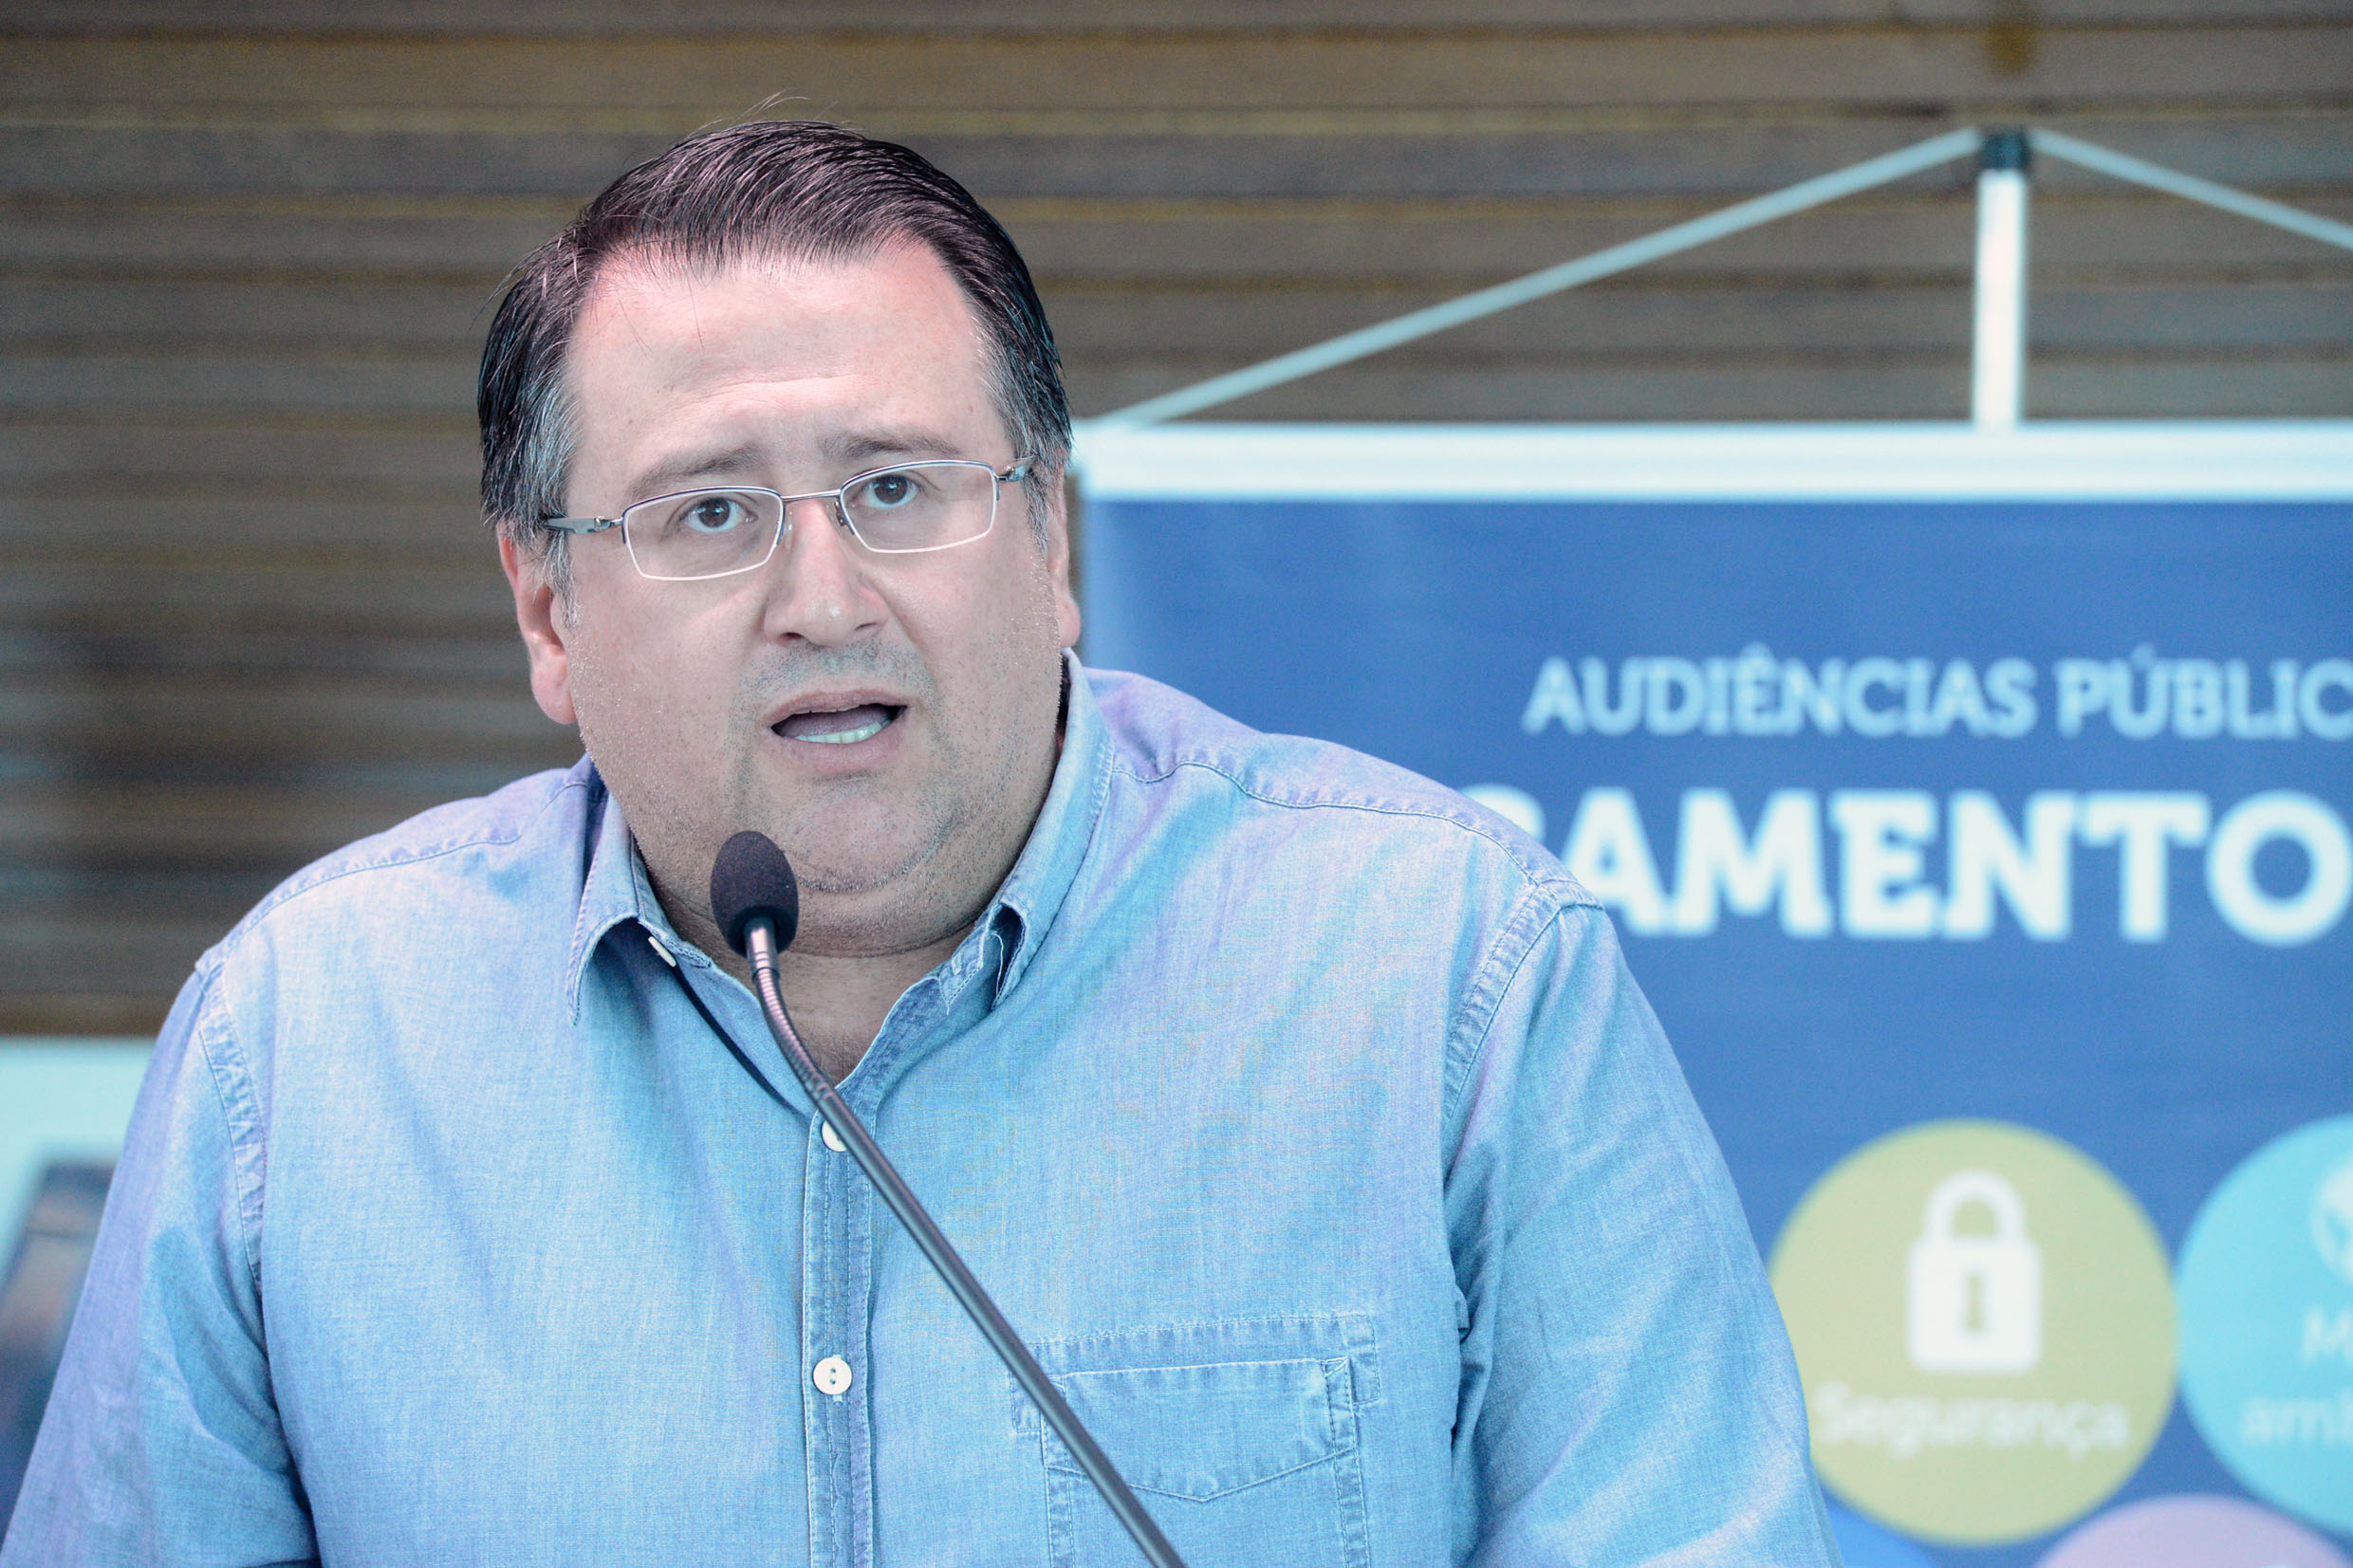 Roberto Araujo<a style='float:right' href='https://www3.al.sp.gov.br/repositorio/noticia/N-06-2018/fg224950.jpg' target=_blank><img src='/_img/material-file-download-white.png' width='14px' alt='Clique para baixar a imagem'></a>